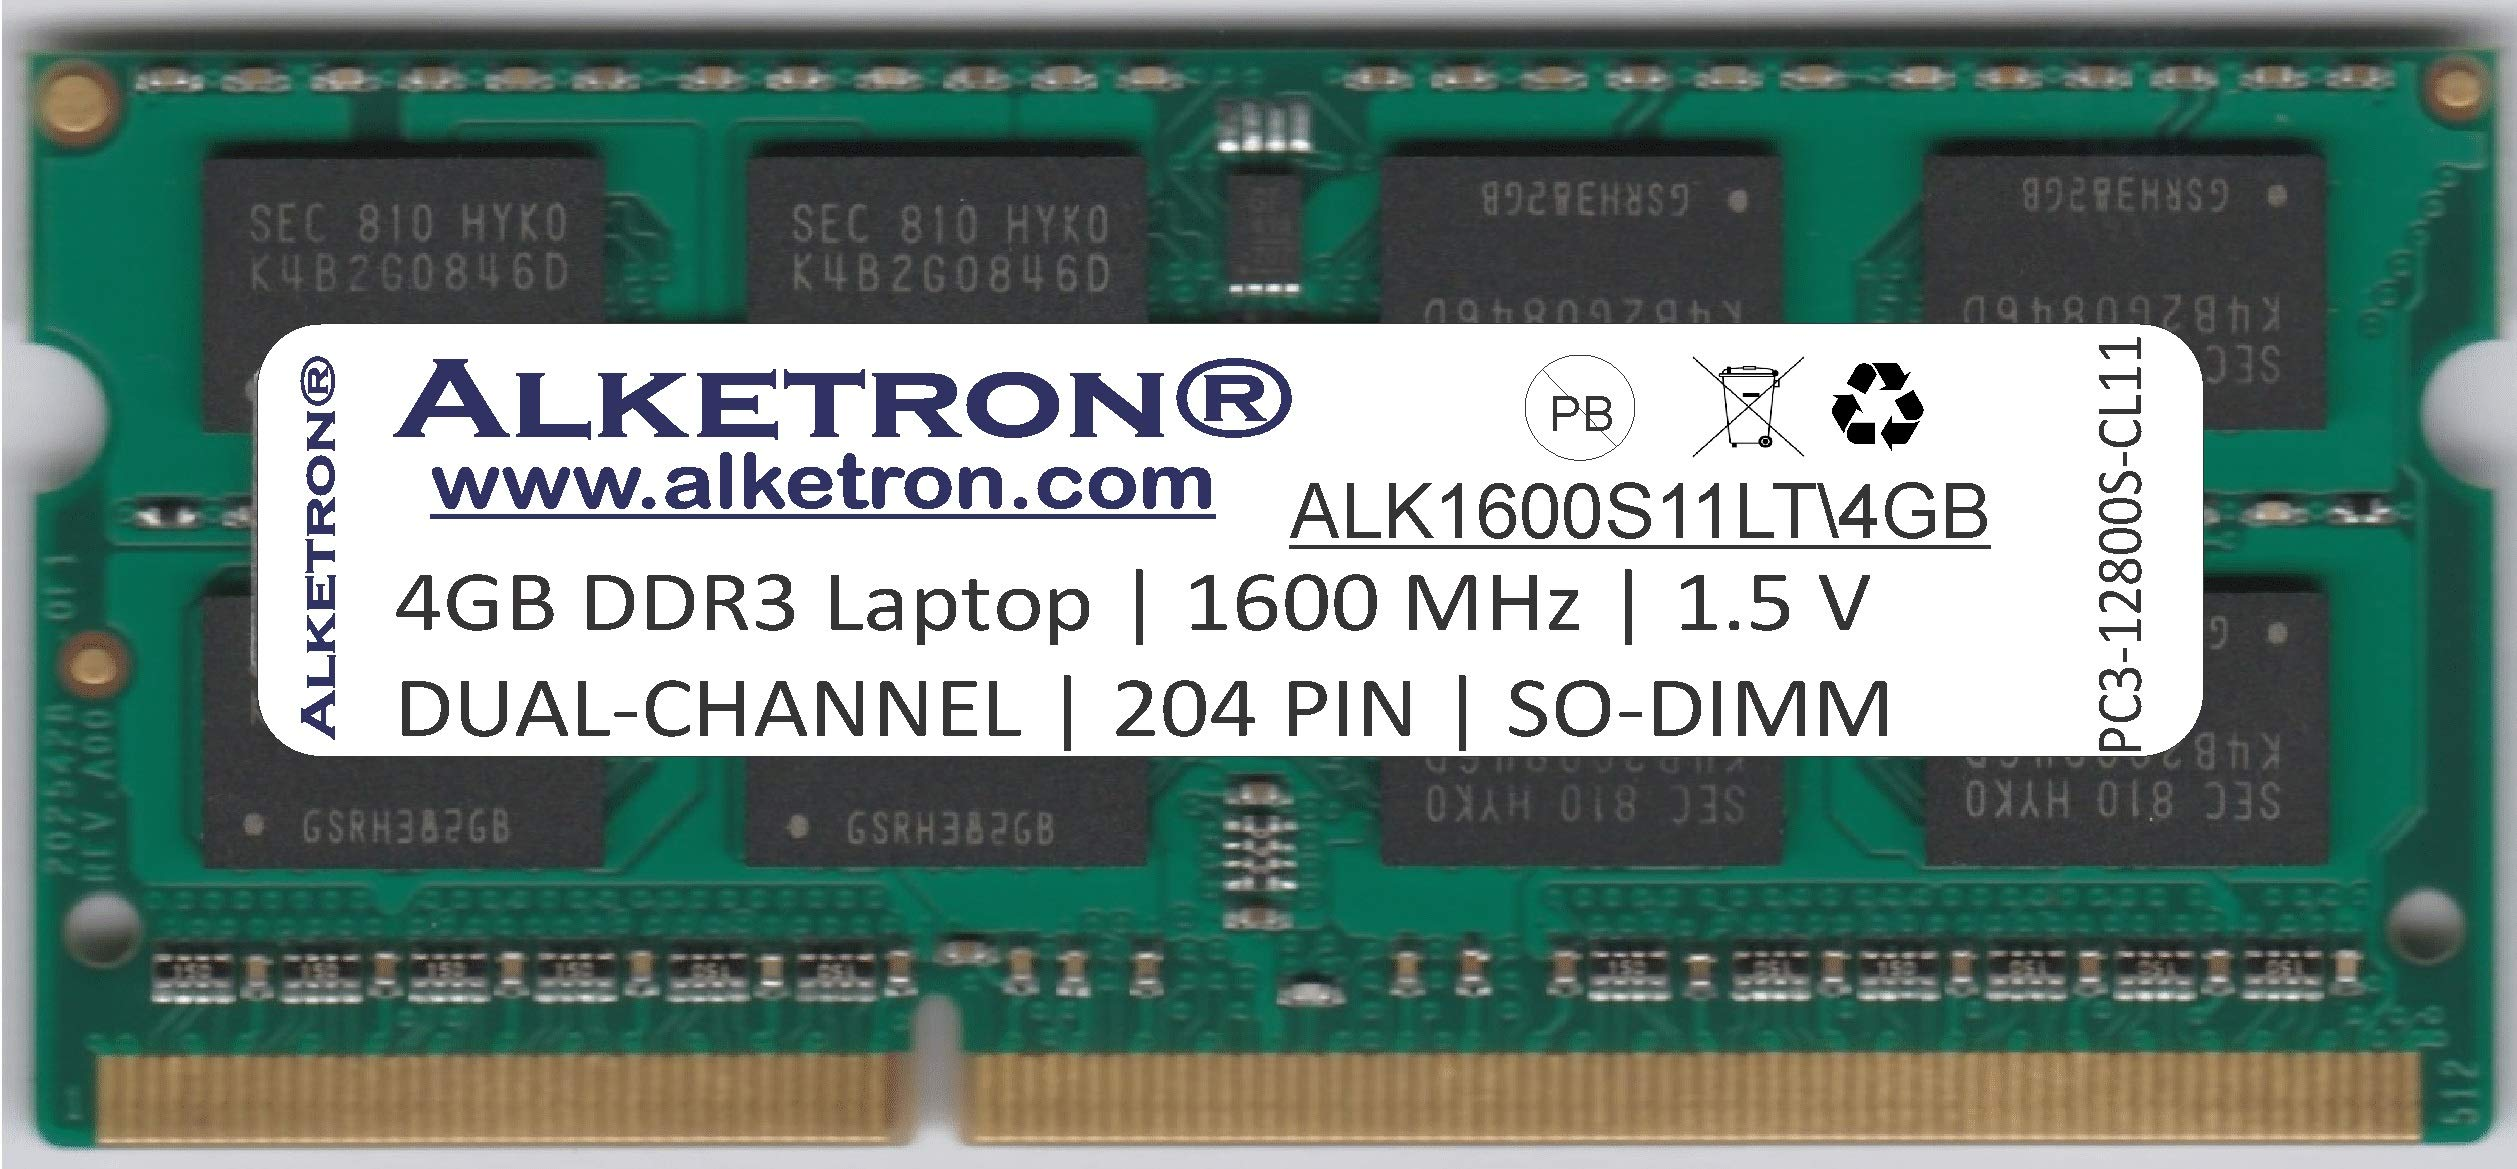 Alketron Dual Channel CL11 DDR3 RAM for Laptop 4GB 1600MHz SODIMM (B07MTPRKKP) Amazon Price History, Amazon Price Tracker